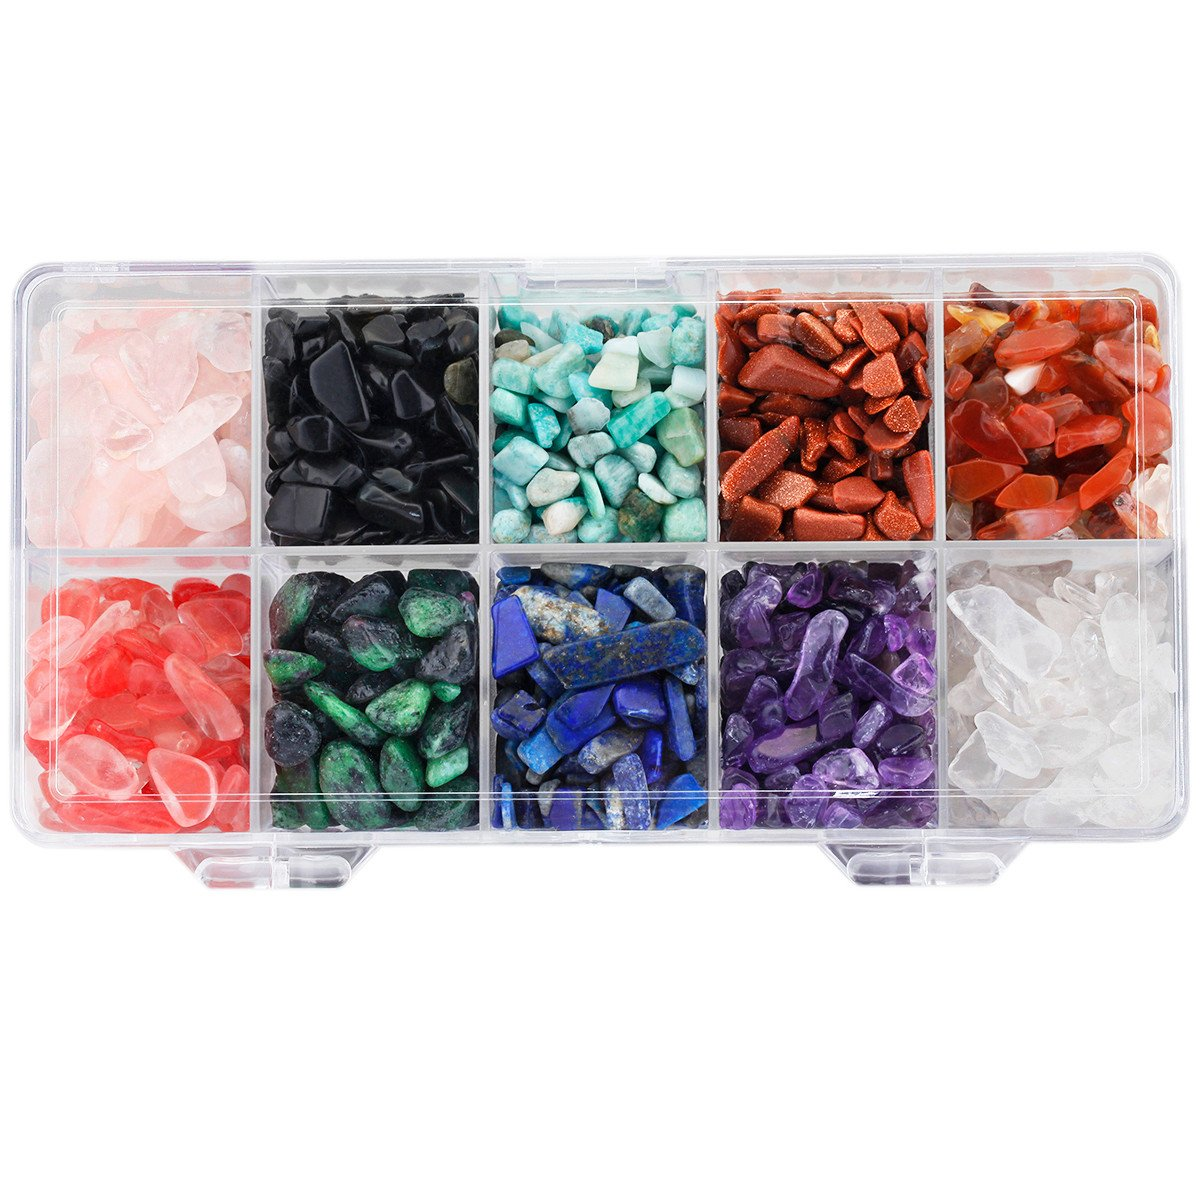 SUNYIK 10 Assorted Stones Tumbled Chips Stone Crushed Pieces Crystal Quartz for Tumbling,Cabbing